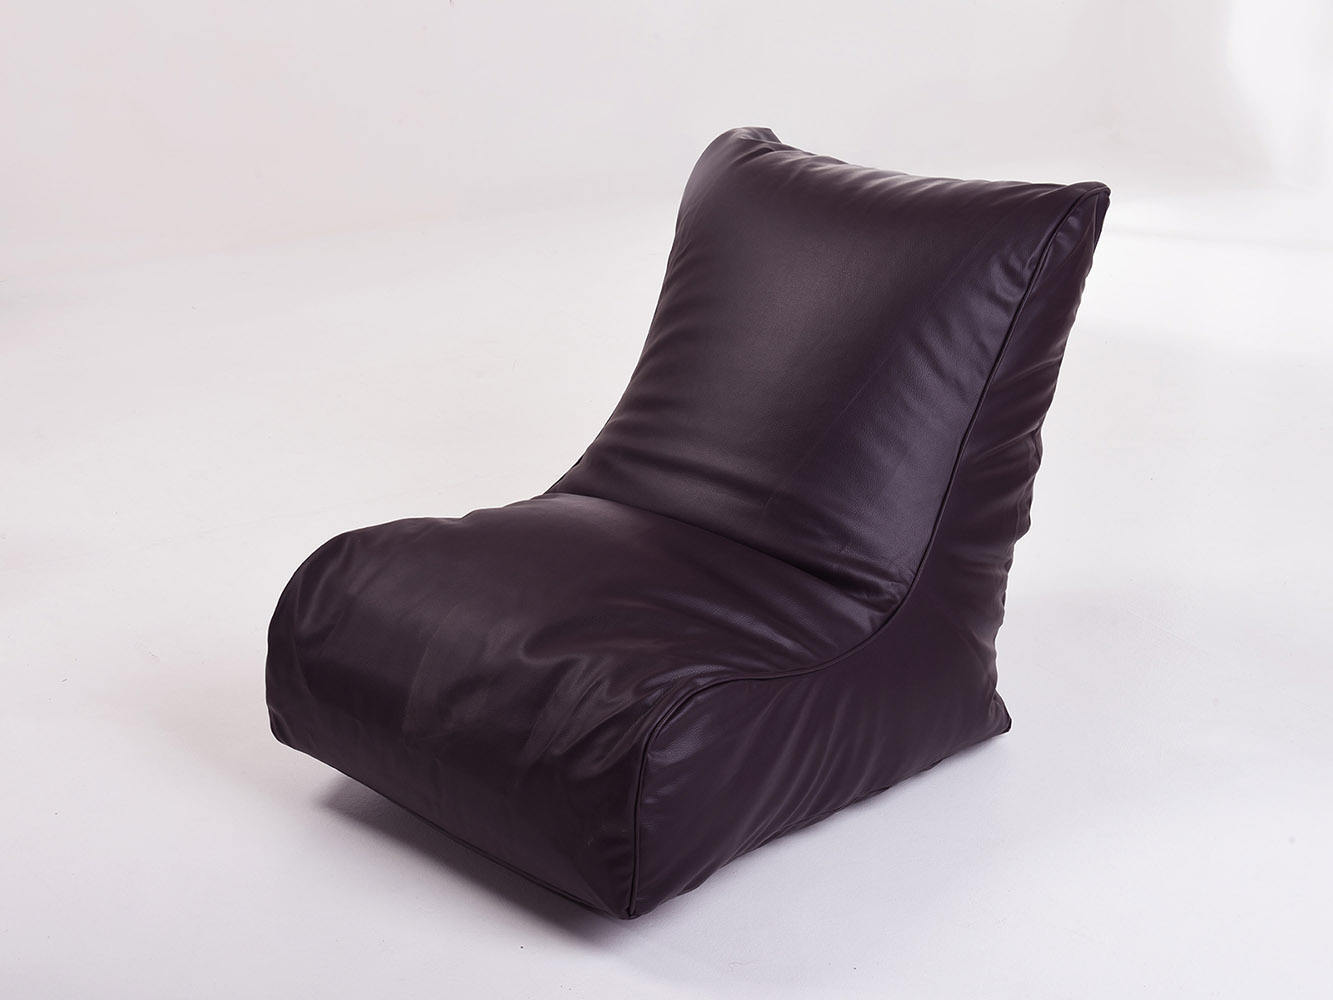 Leather Look Gaming Chair/ Bean Bag in Aubergine